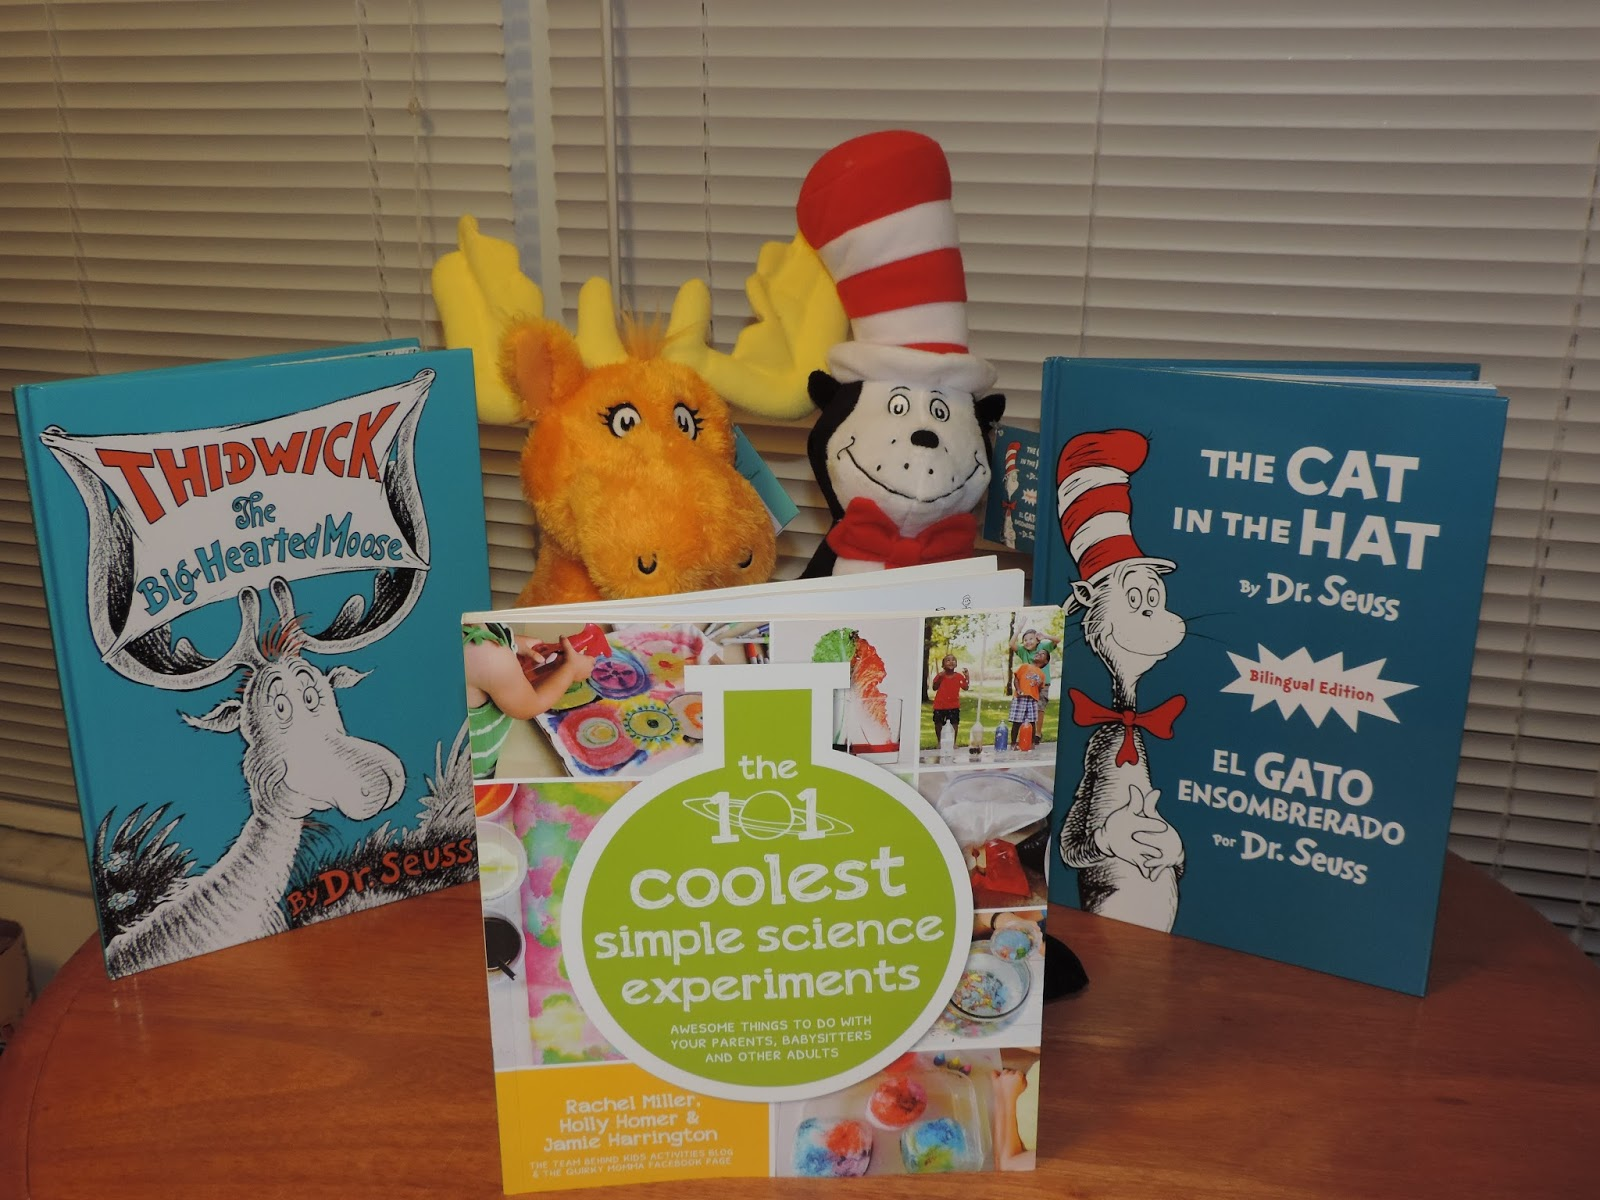 Coloring books for adults kohls - That 101 Coolest Science Experiments Book Also Available In This Kohl S Cares Line Is Pretty Downright Nifty We Have Been Working With A Little One Here